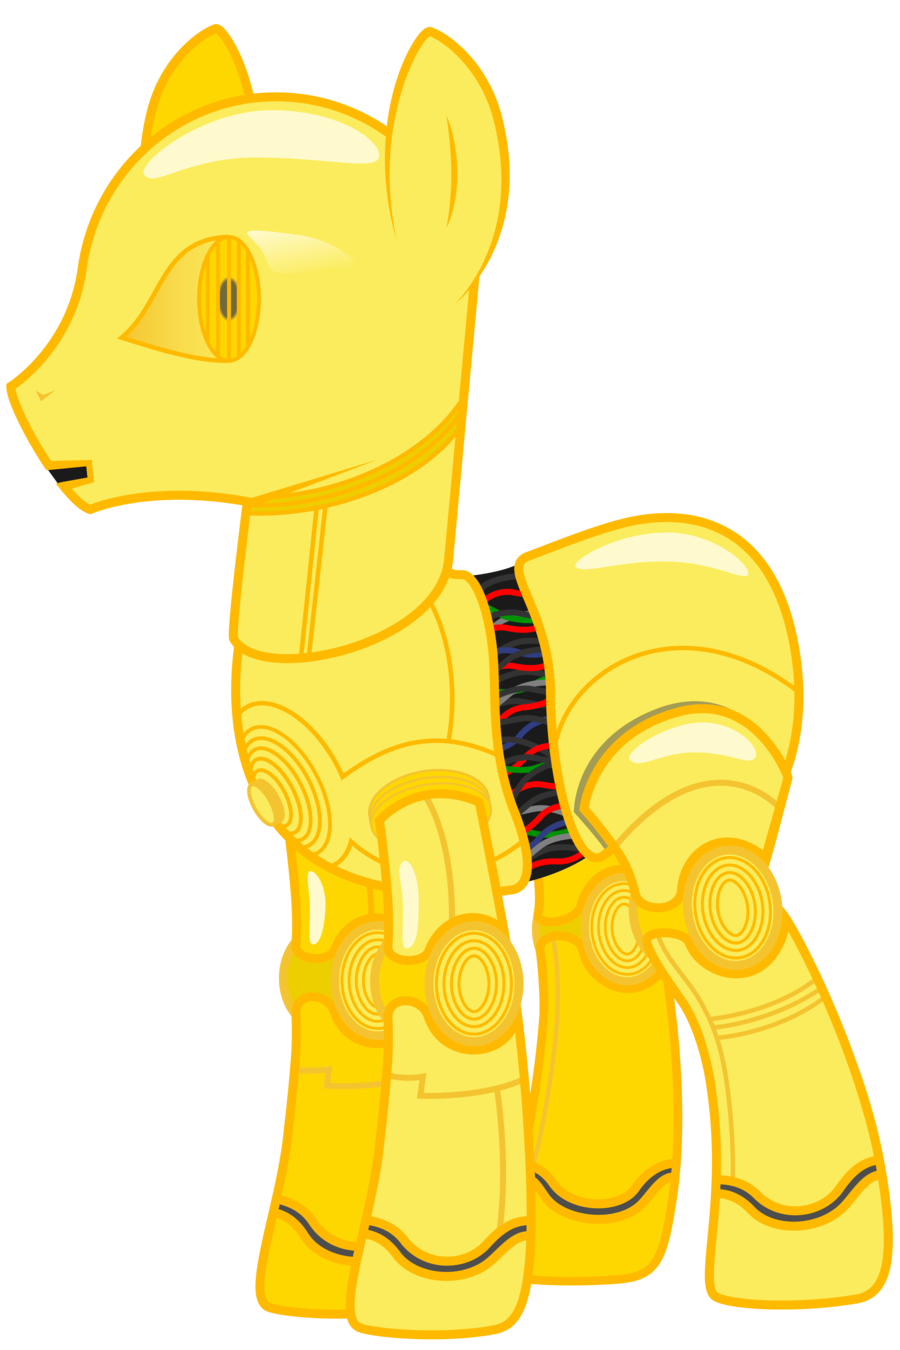 Image my little pony. Starwars clipart r2d2 c3po